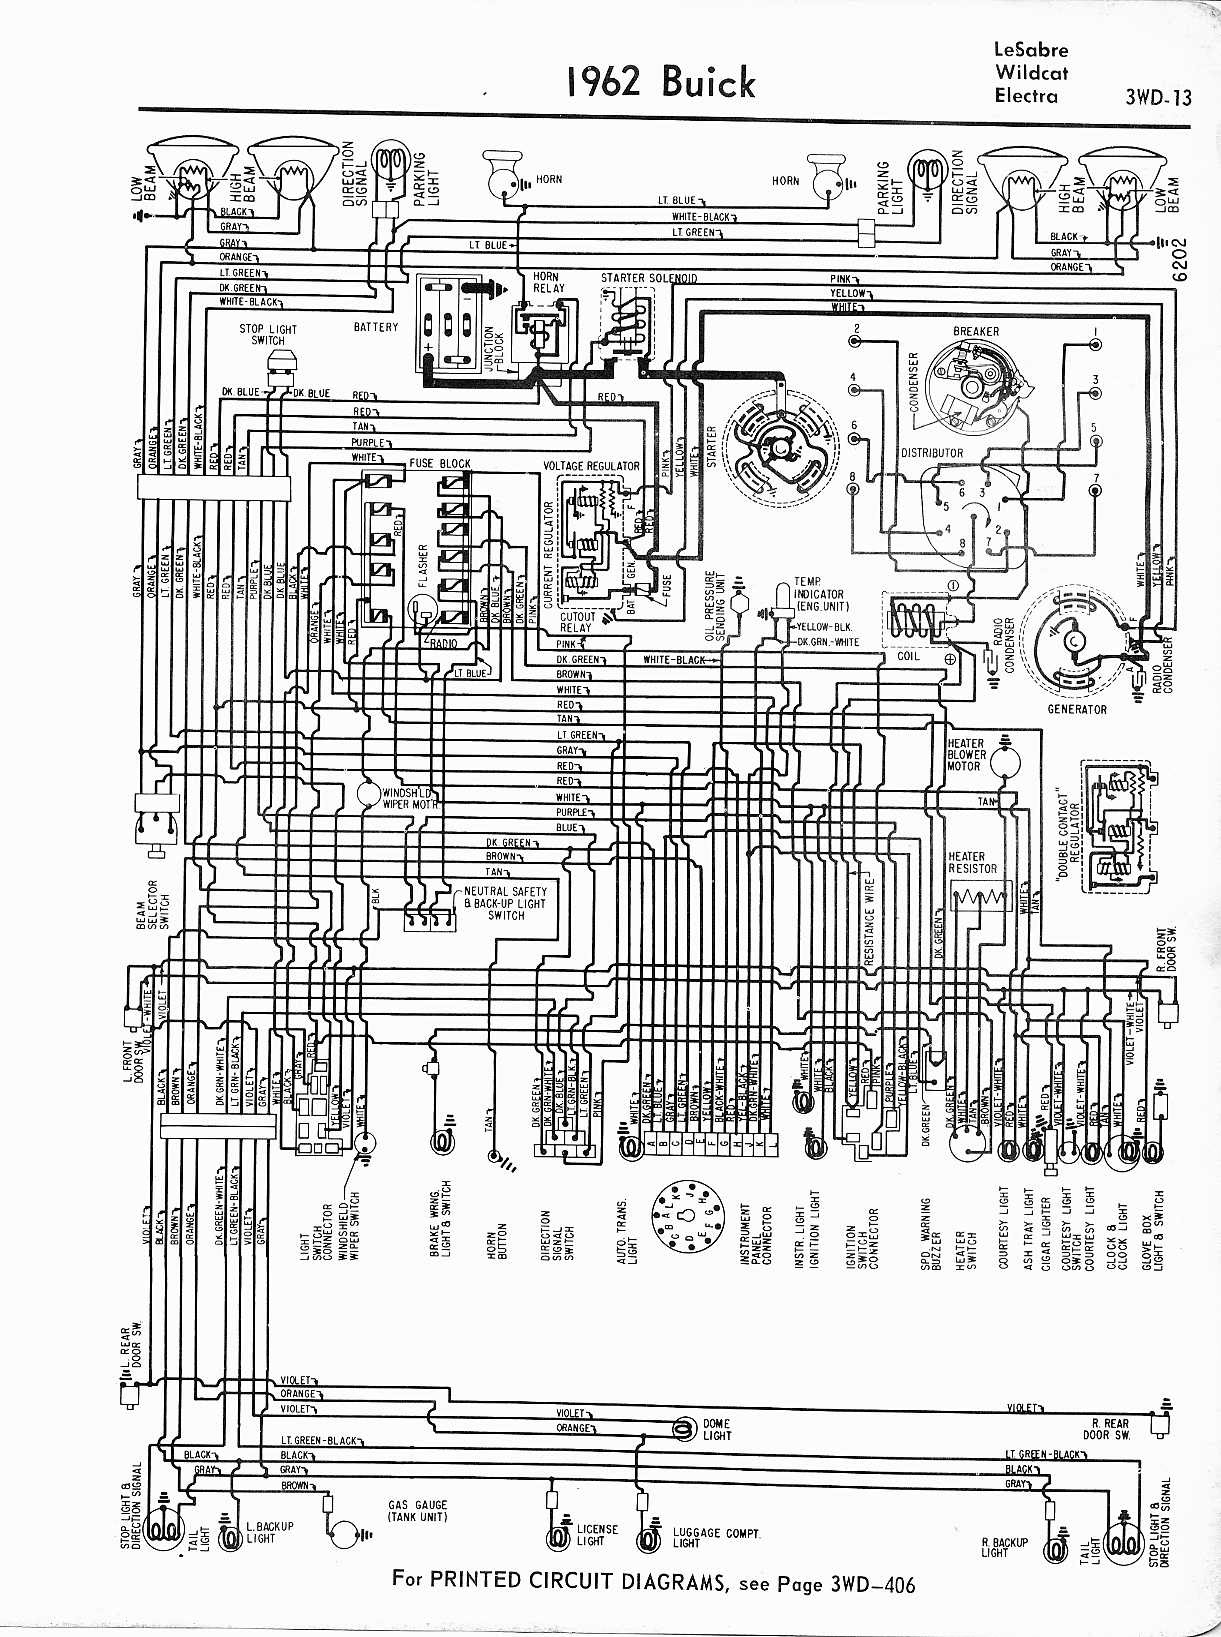 1953 Buick Engine Wiring Diagram Wiring Diagram Grab Grab Lastanzadeltempo It